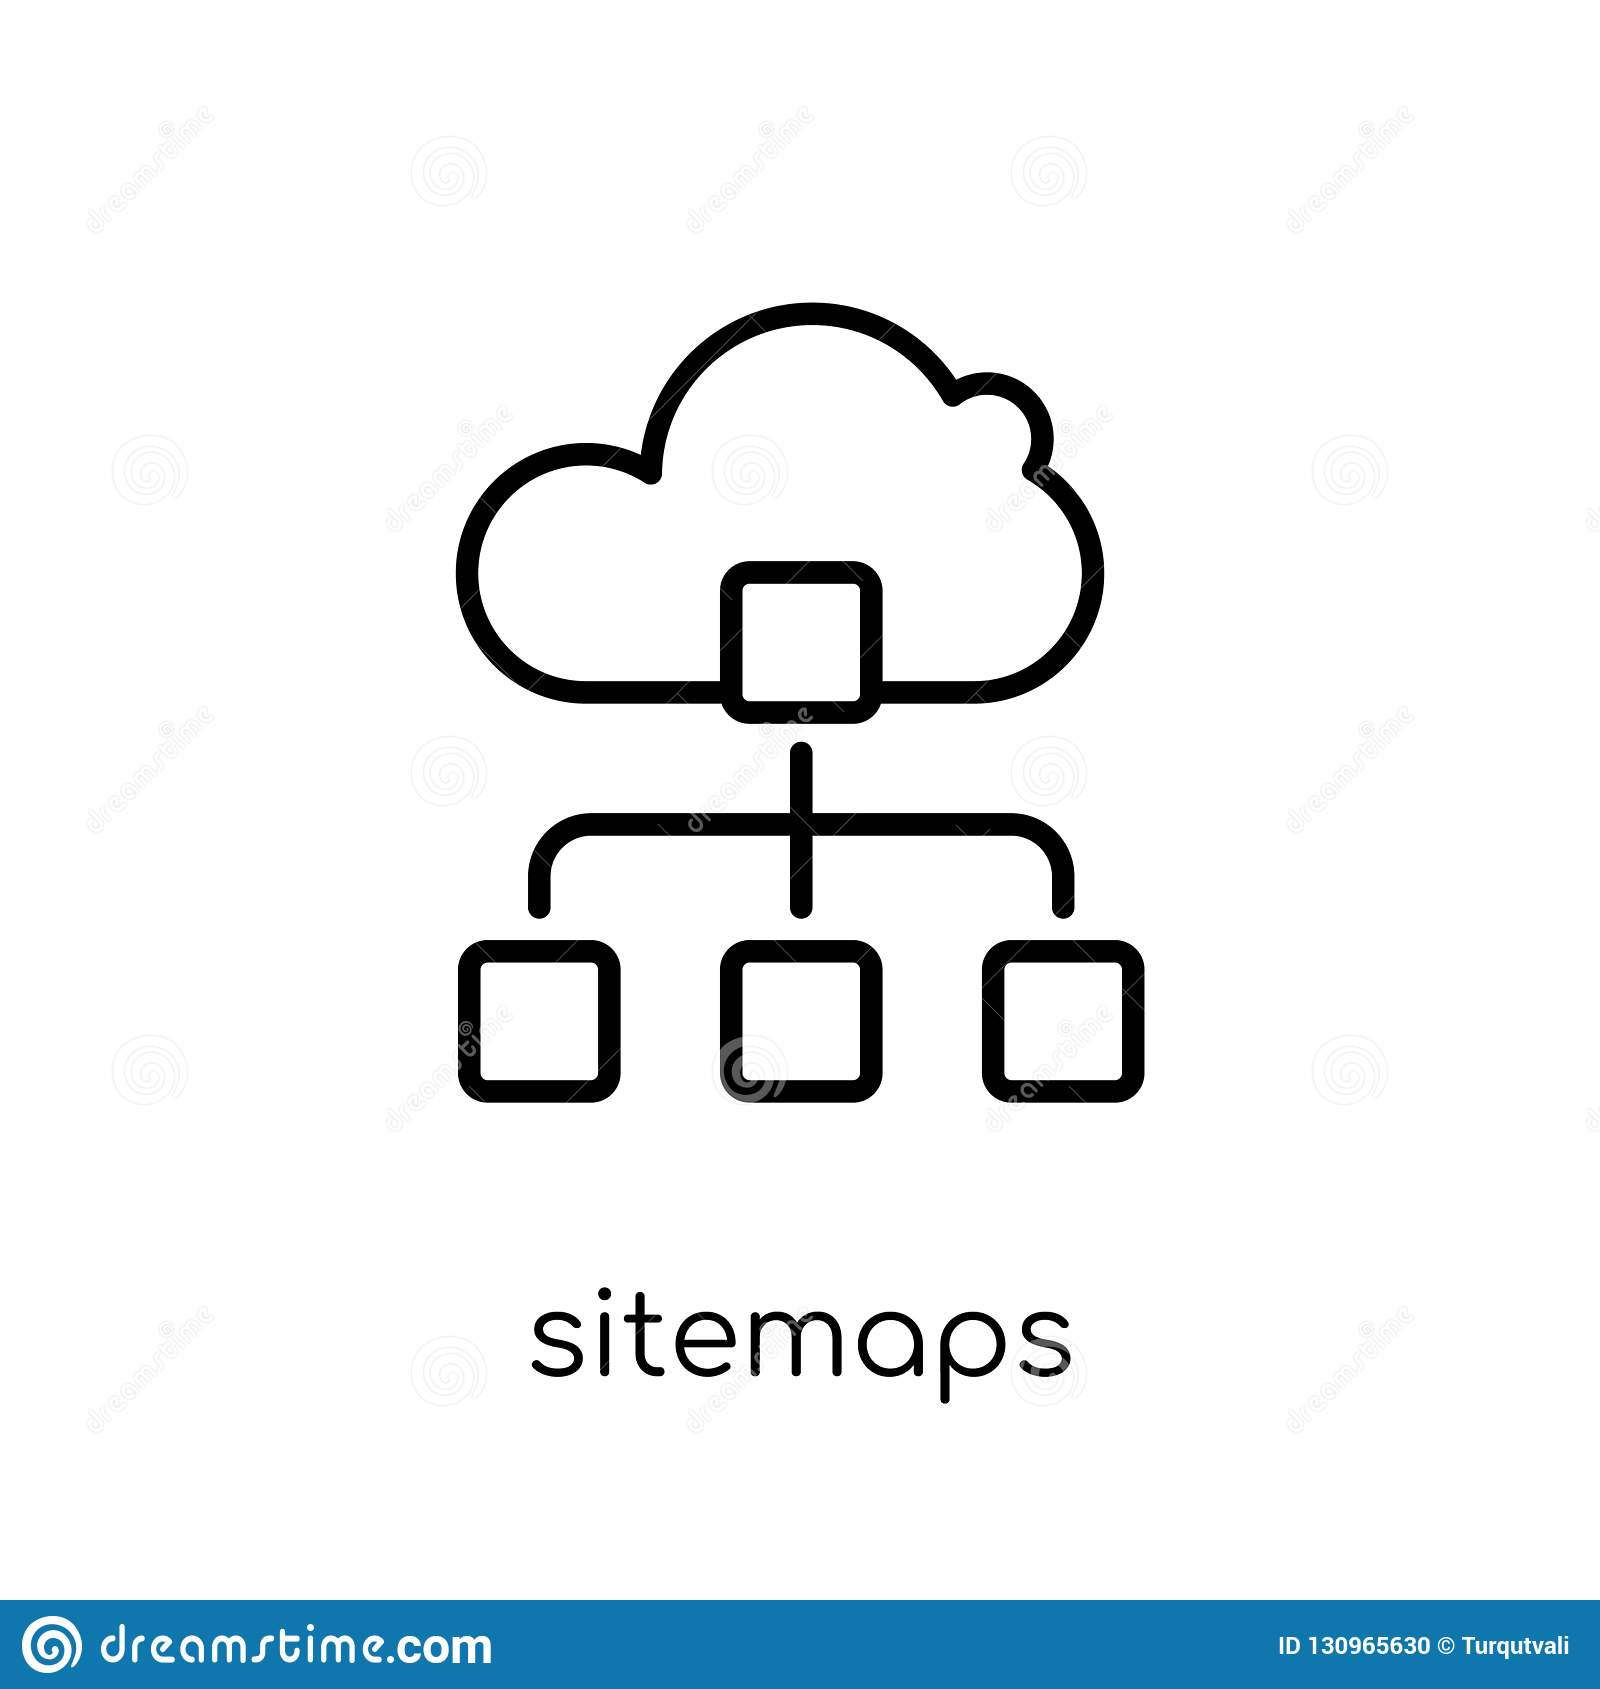 Sitemaps icon. Trendy modern flat linear vector Sitemaps icon on